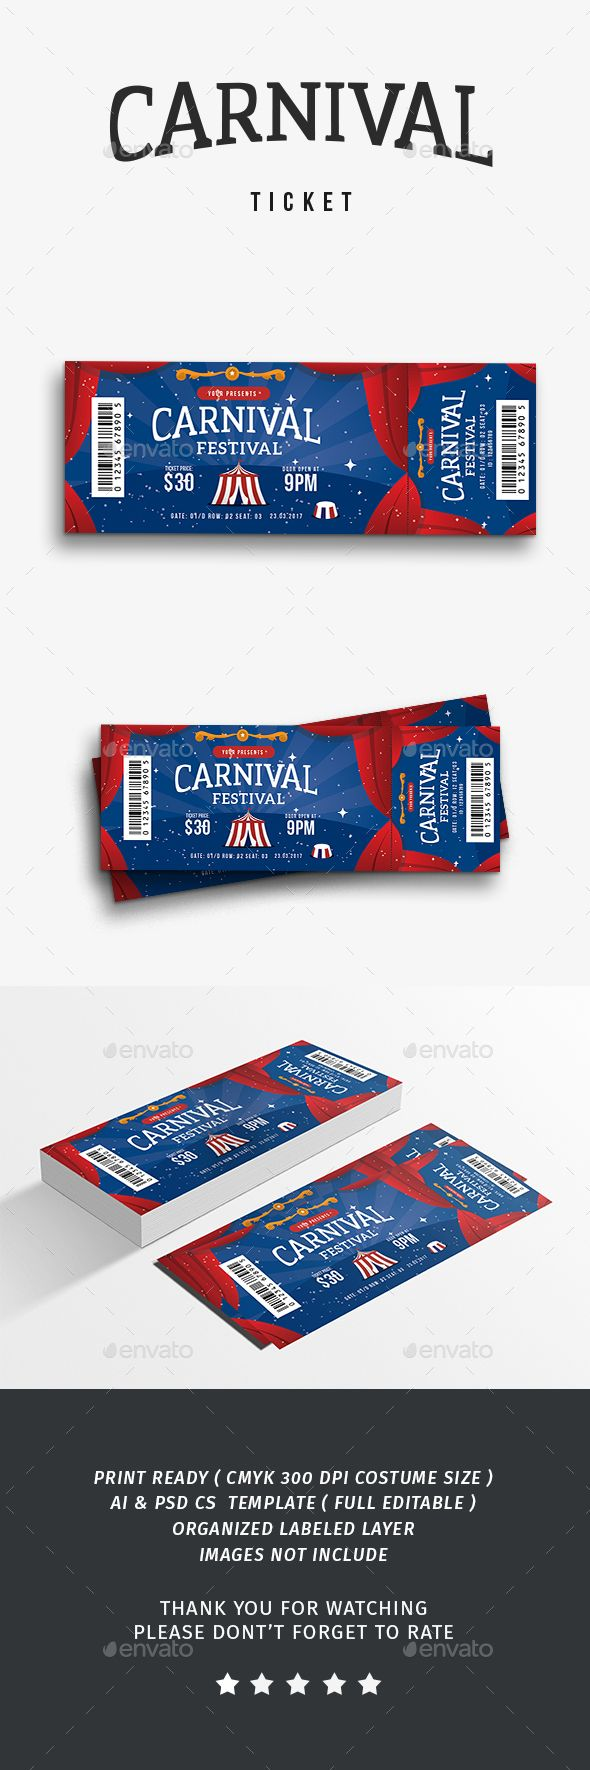 Carnival Event Ticket